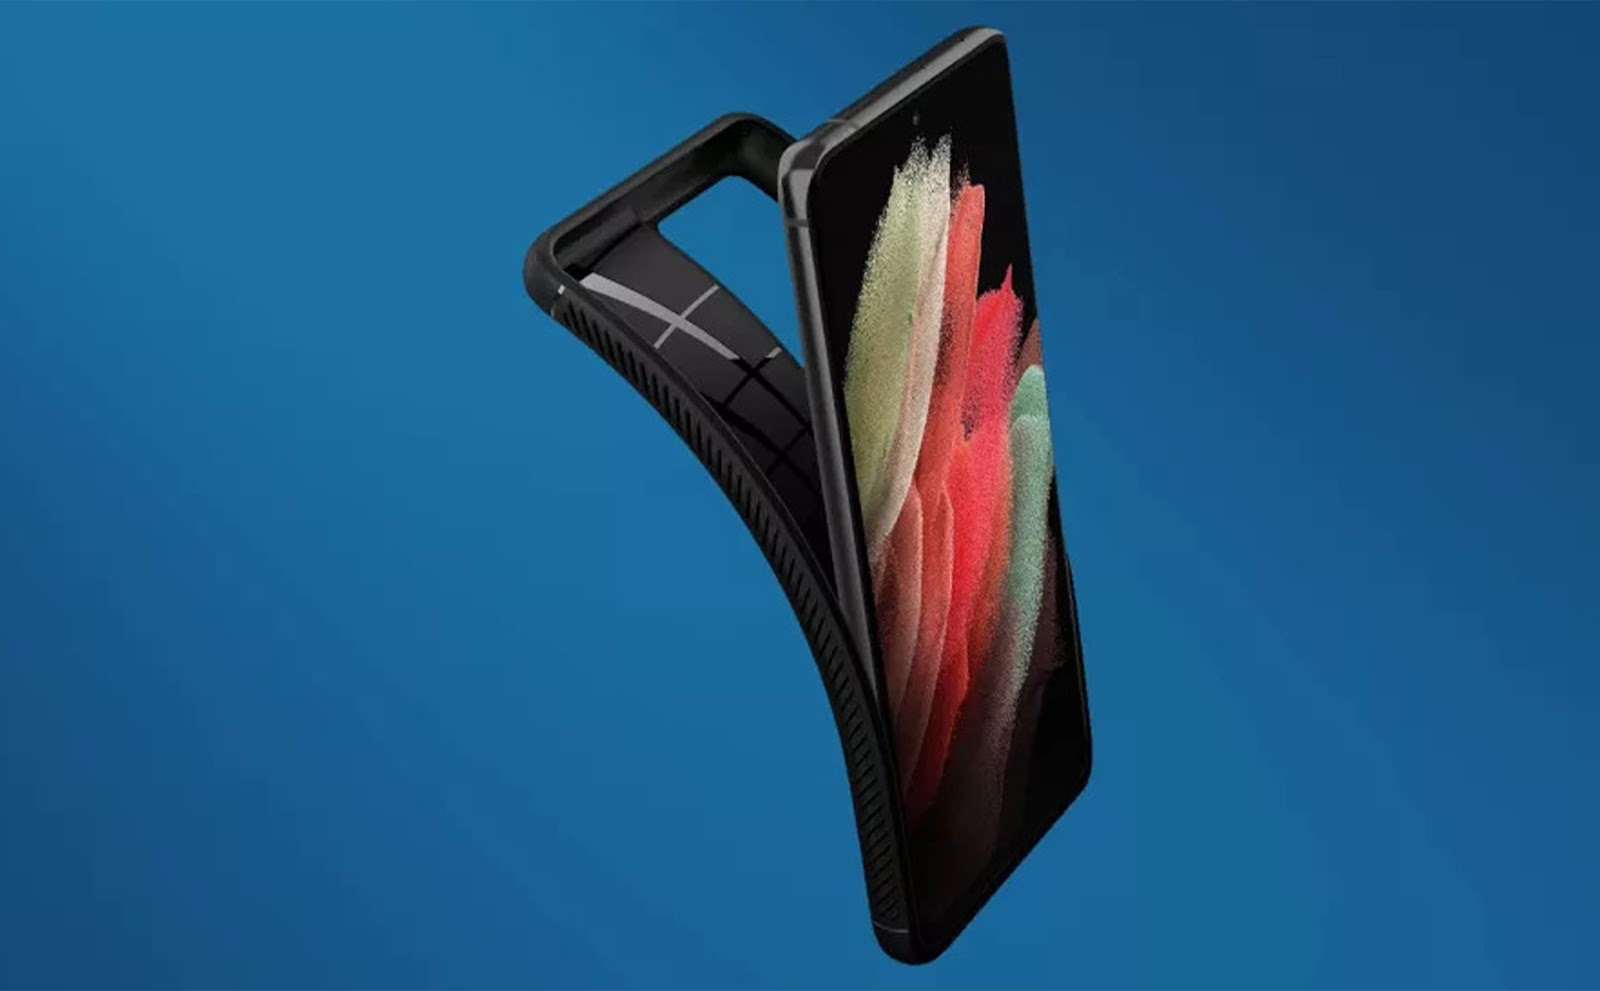 The best case for Samsung Galaxy S21 Ultra in 2021 5